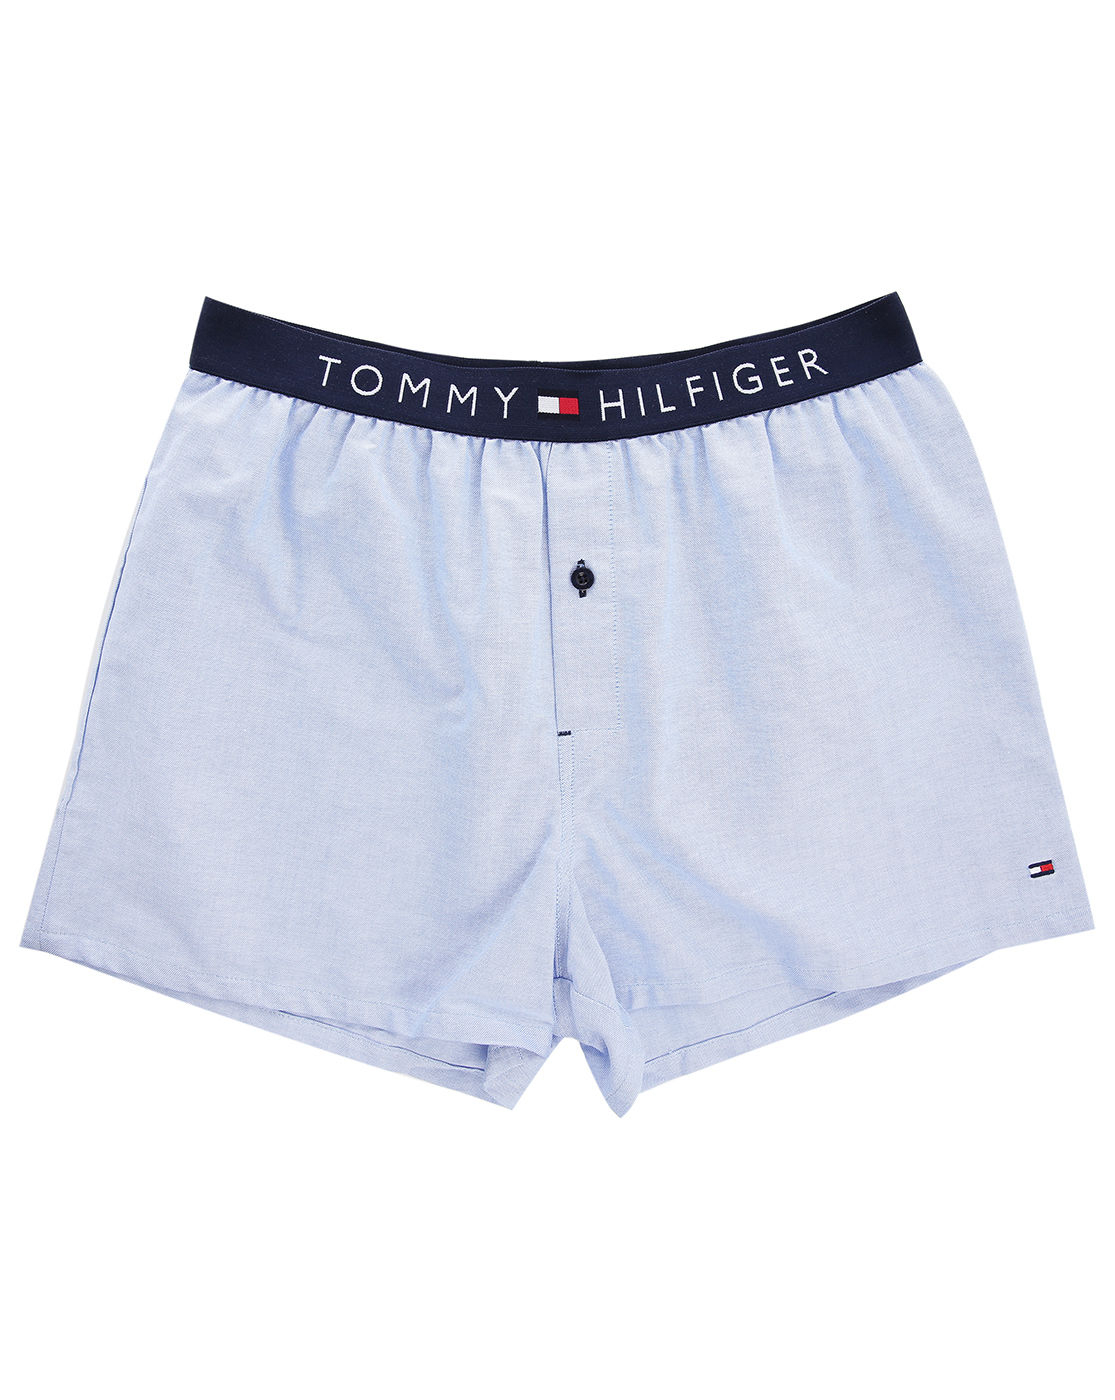 tommy hilfiger blue oxford boxer shorts in blue for men lyst